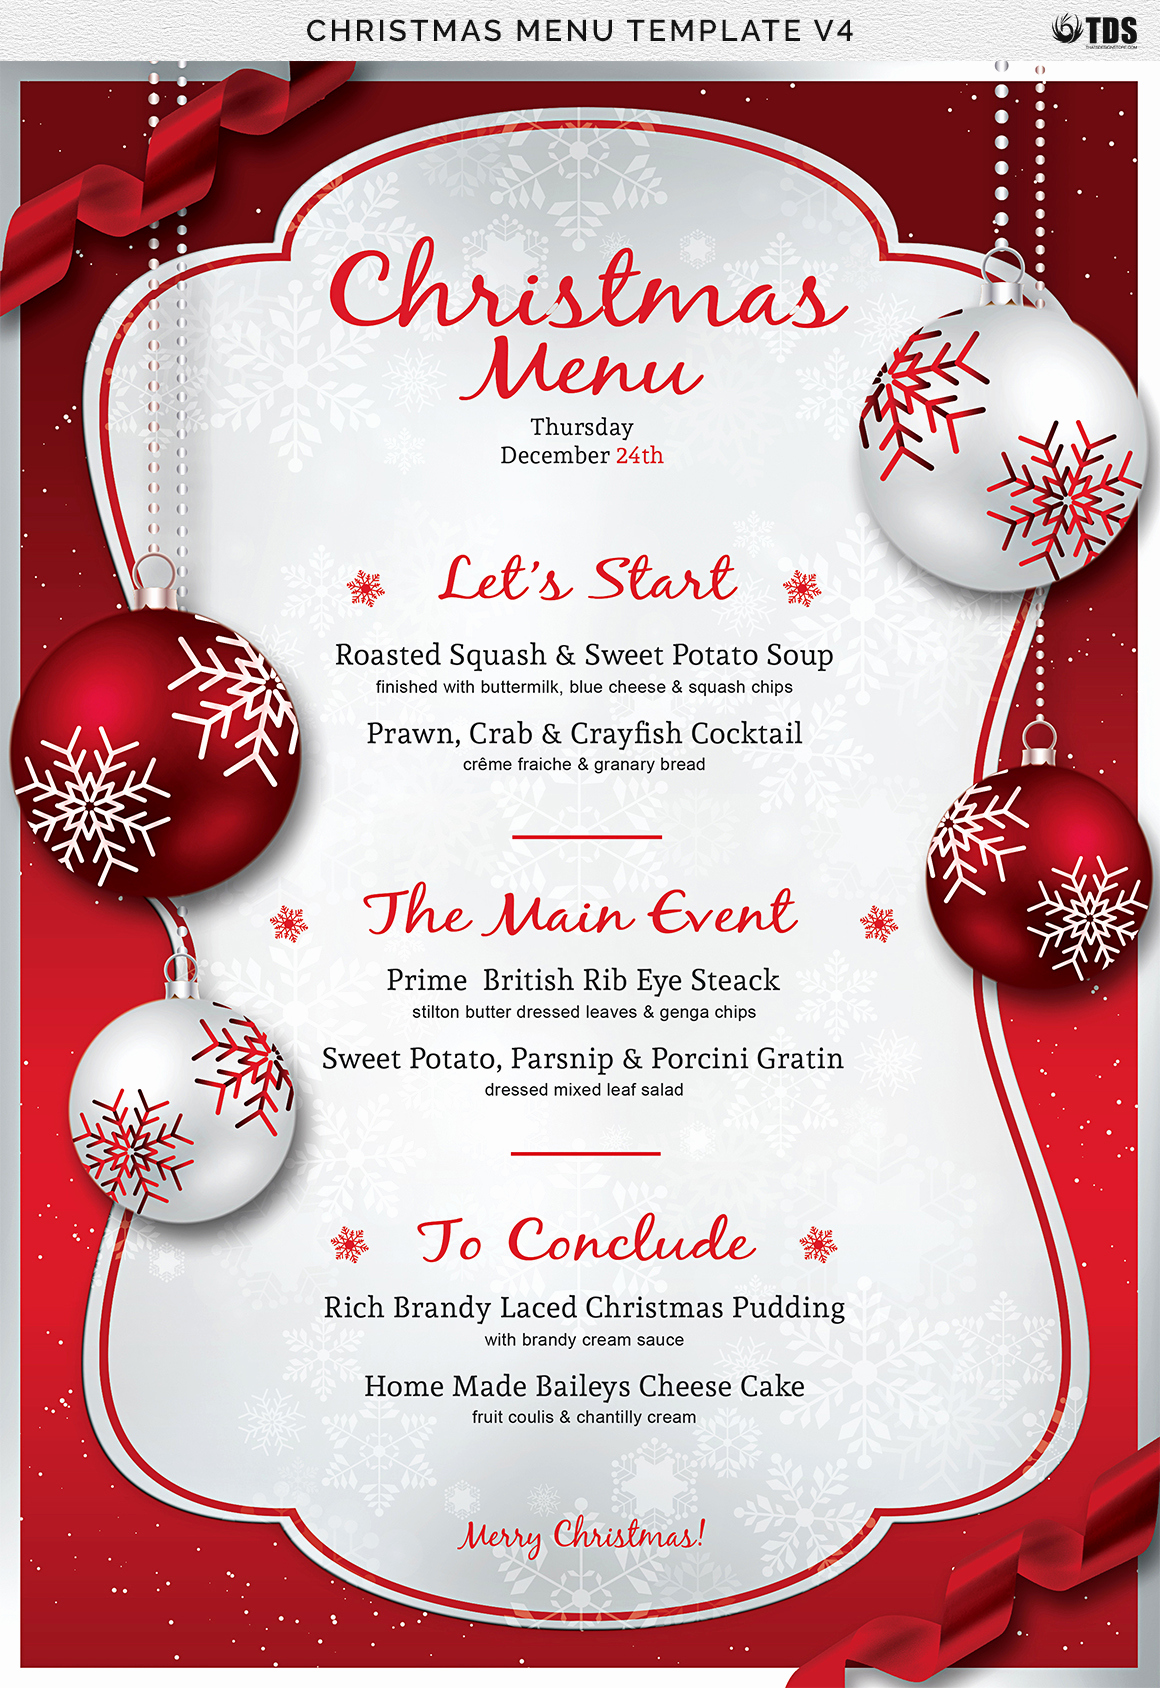 Dinner Menu Template Free Inspirational Christmas Menu Template V4